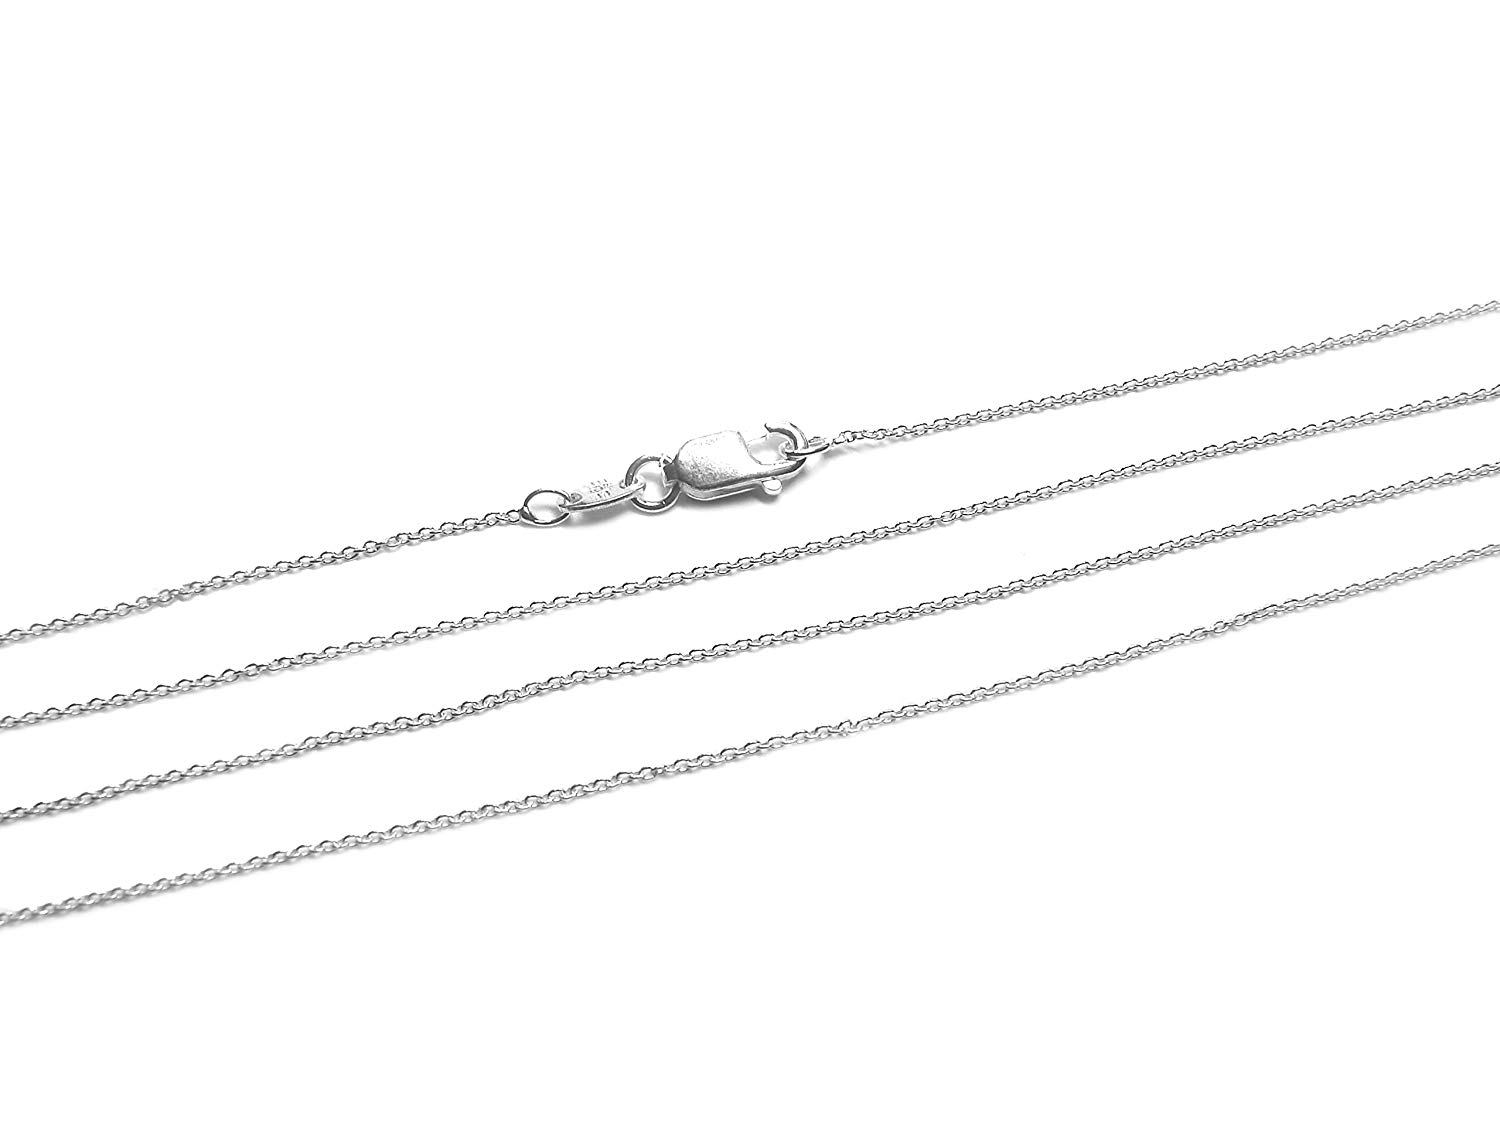 925 Sterling Silver Cable Chain 0.75mm Italian Necklace Chain by BEEZZY BEEDZ (30in)